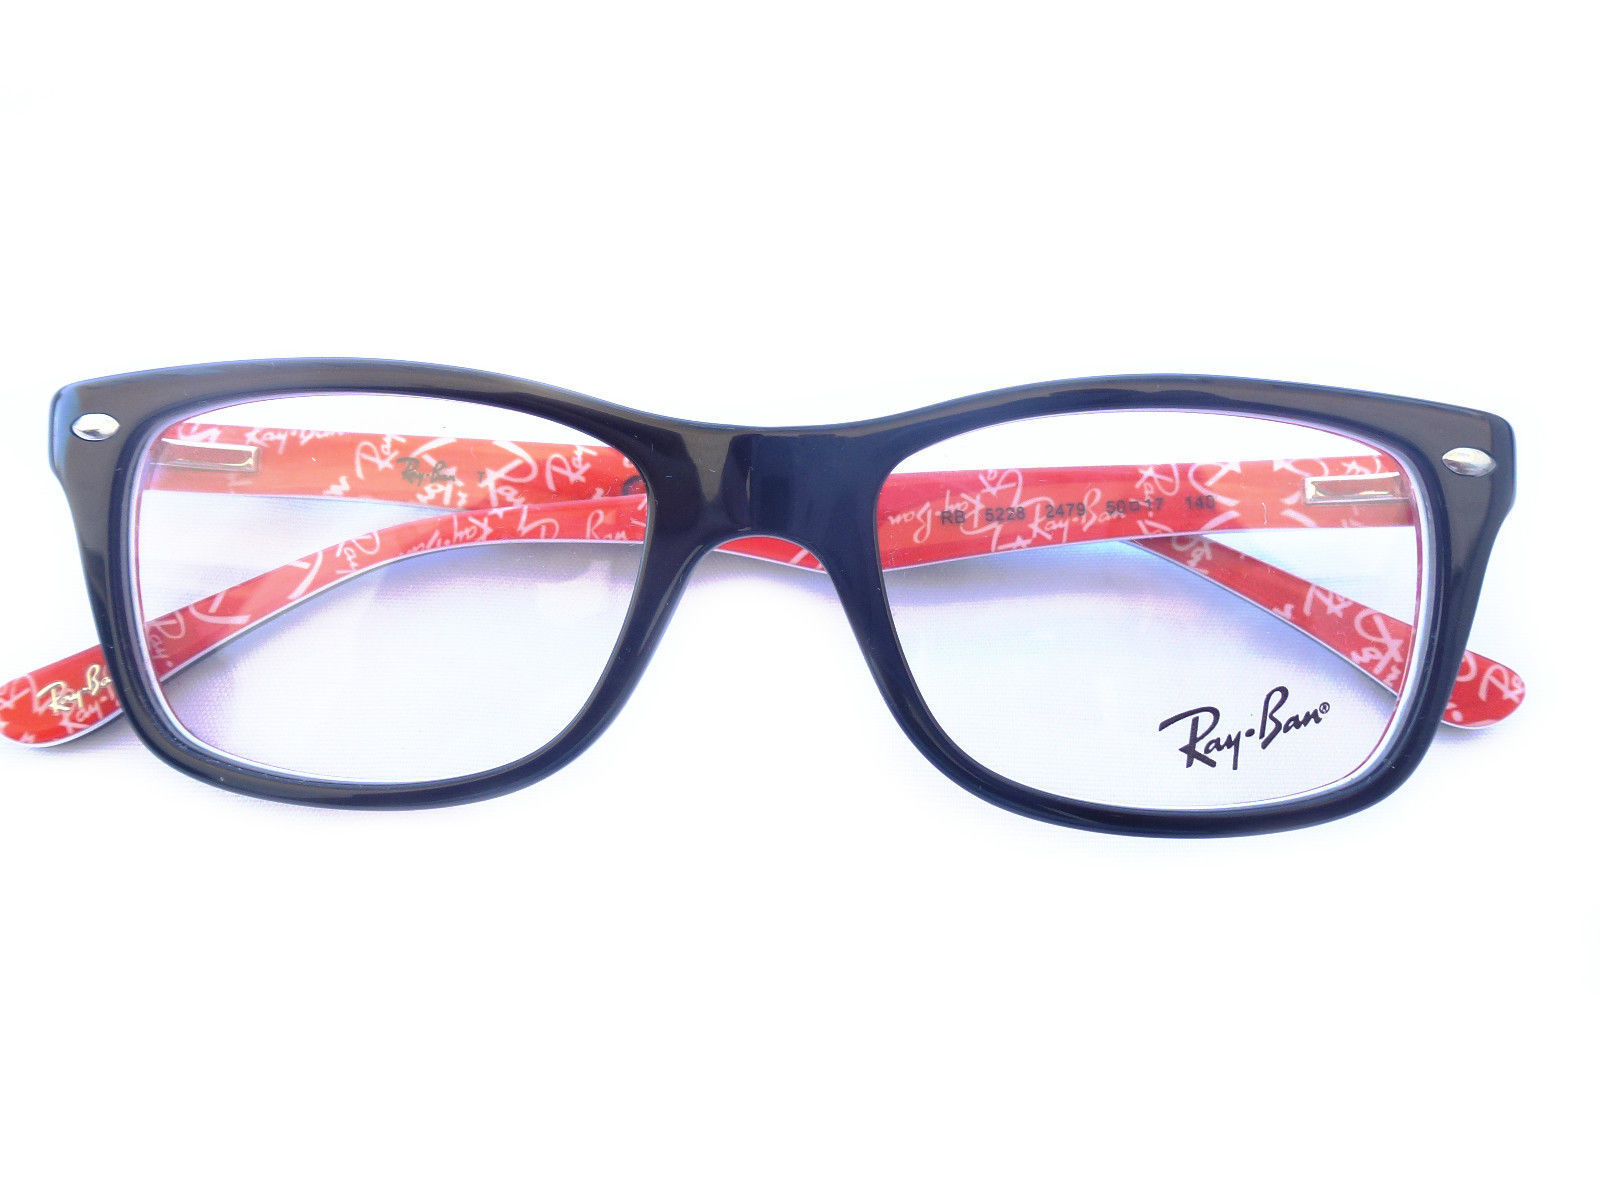 Eyeglass Frame Uae : ray ban frames glass power uae